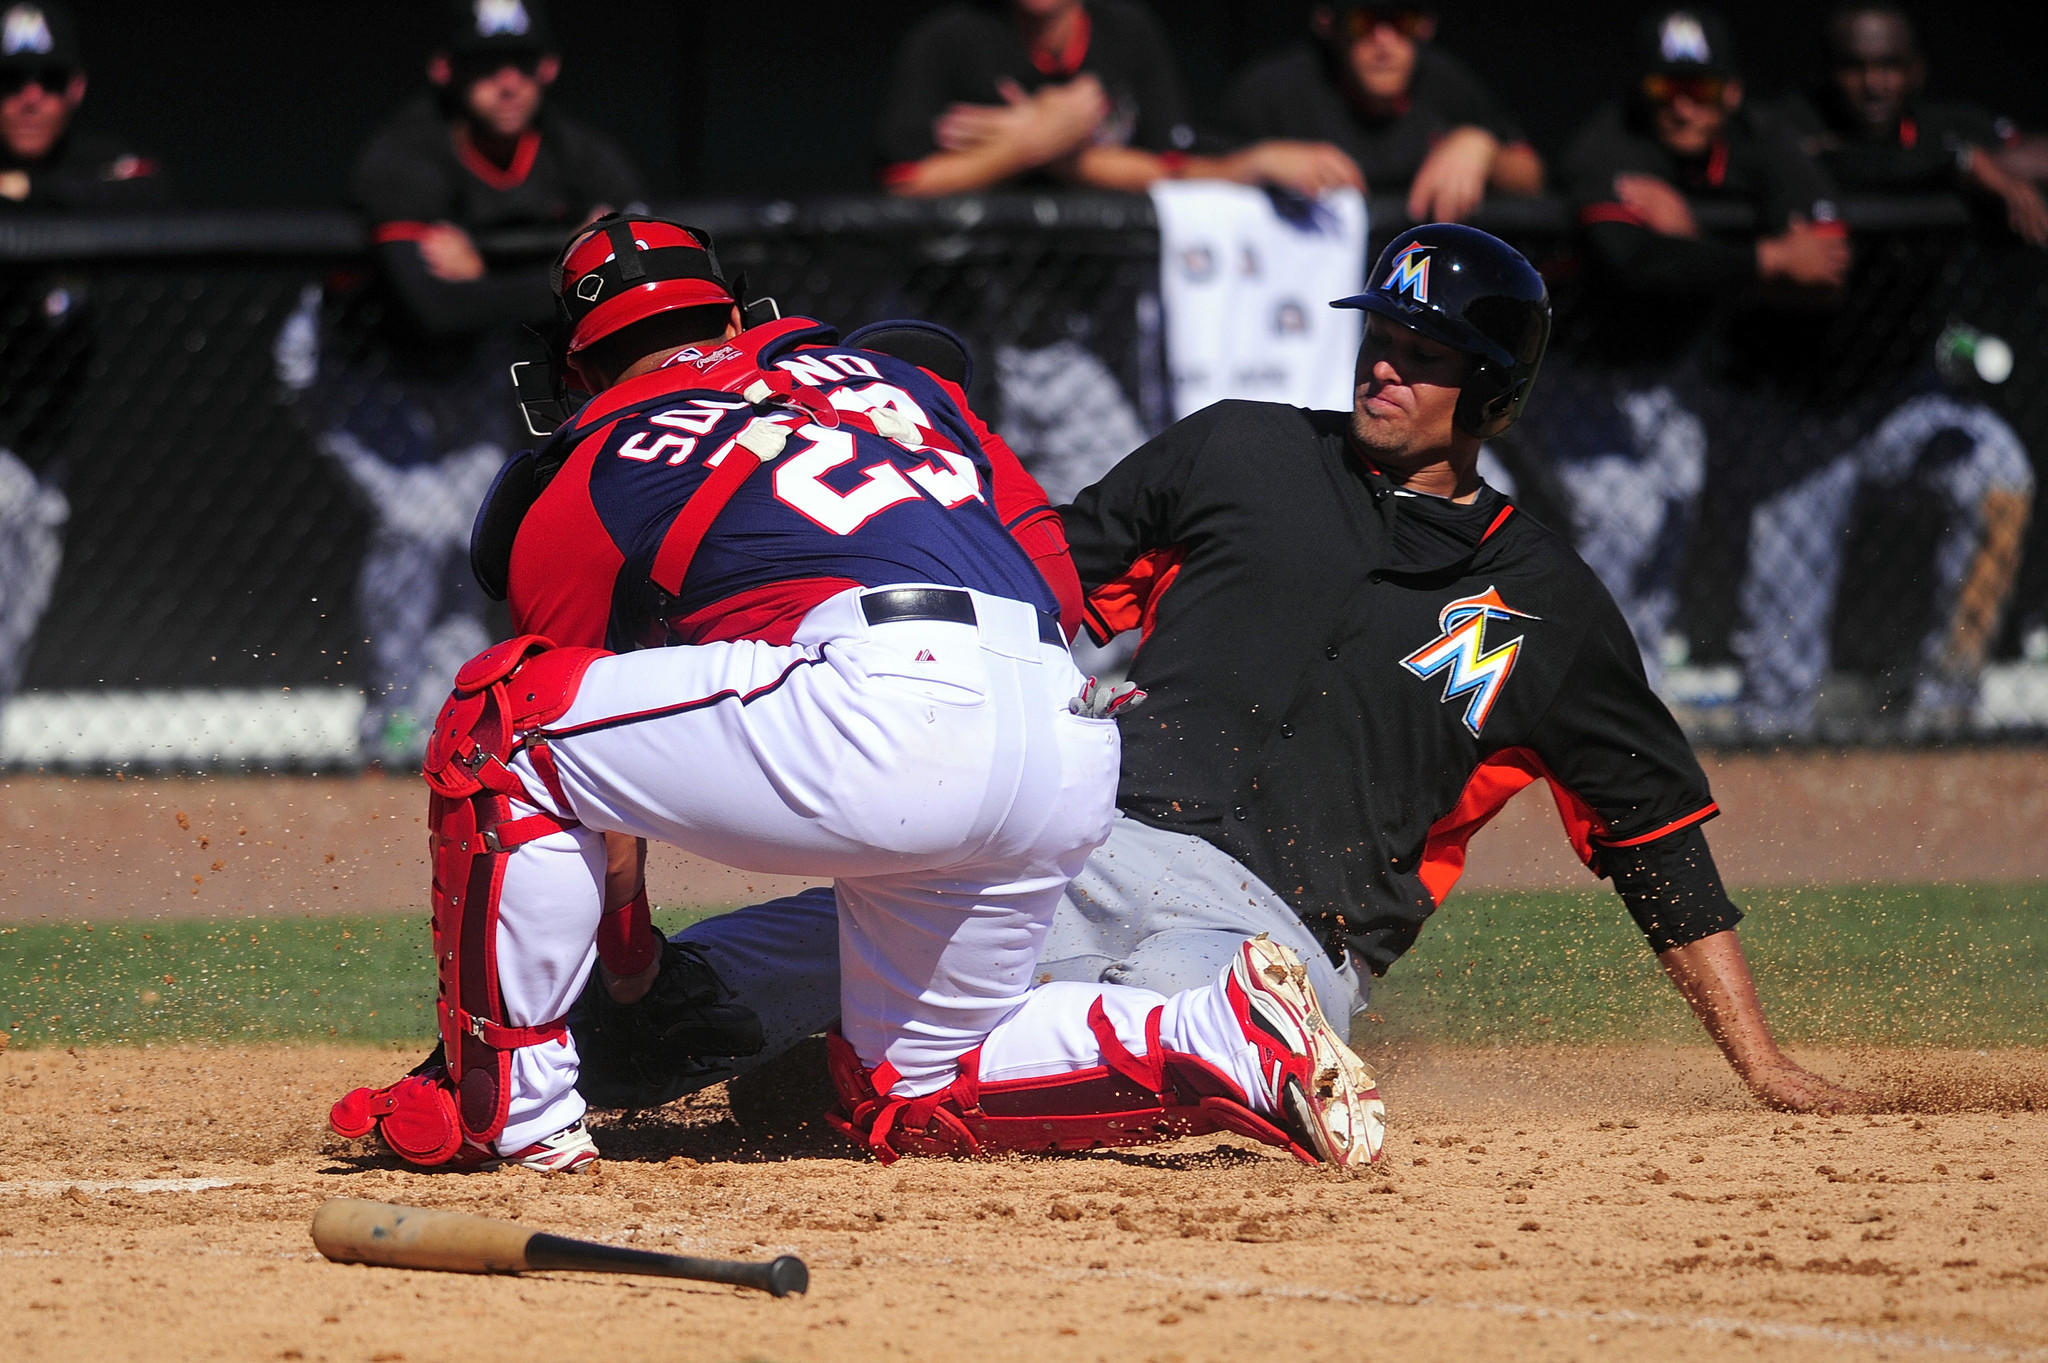 Miami Marlins left fielder Kyle Jensen (65) is tagged out by Washington Nationals catcher Jhonatan Solano (23) in the seventh inning as the Nationals beat the Marlins 10-3 in a spring training exhibition game at Space Coast Stadium Sunday.